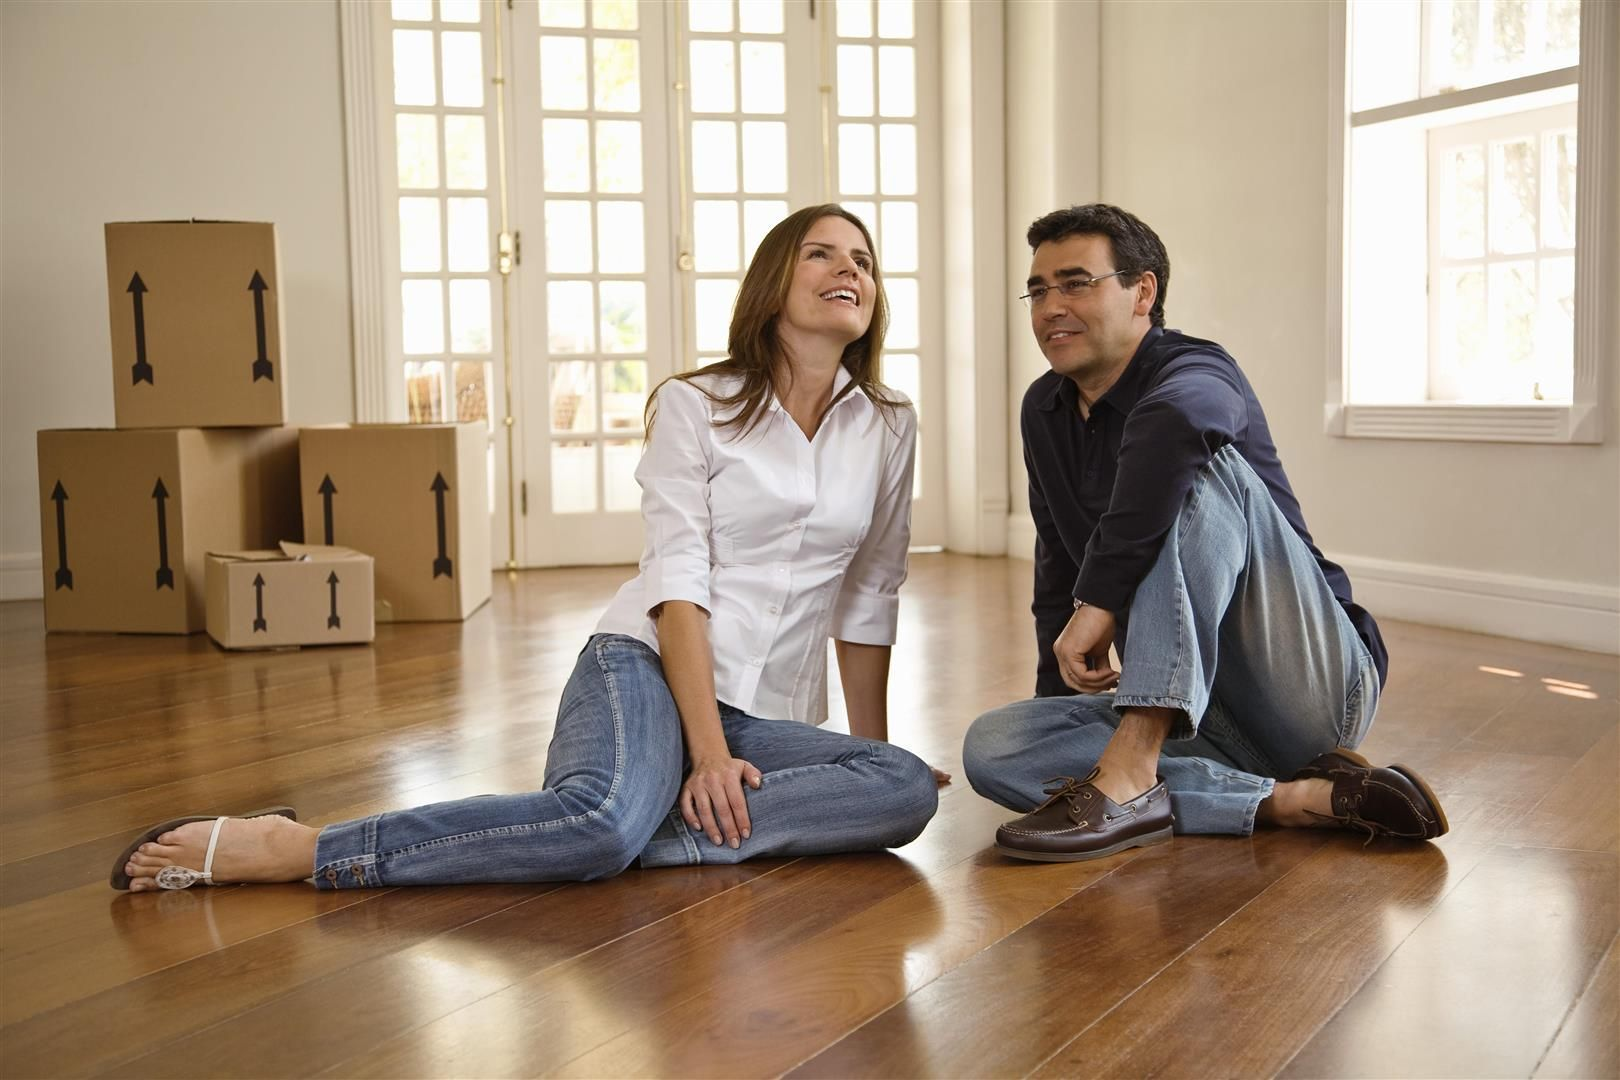 Get an affordable renters insurance quote online